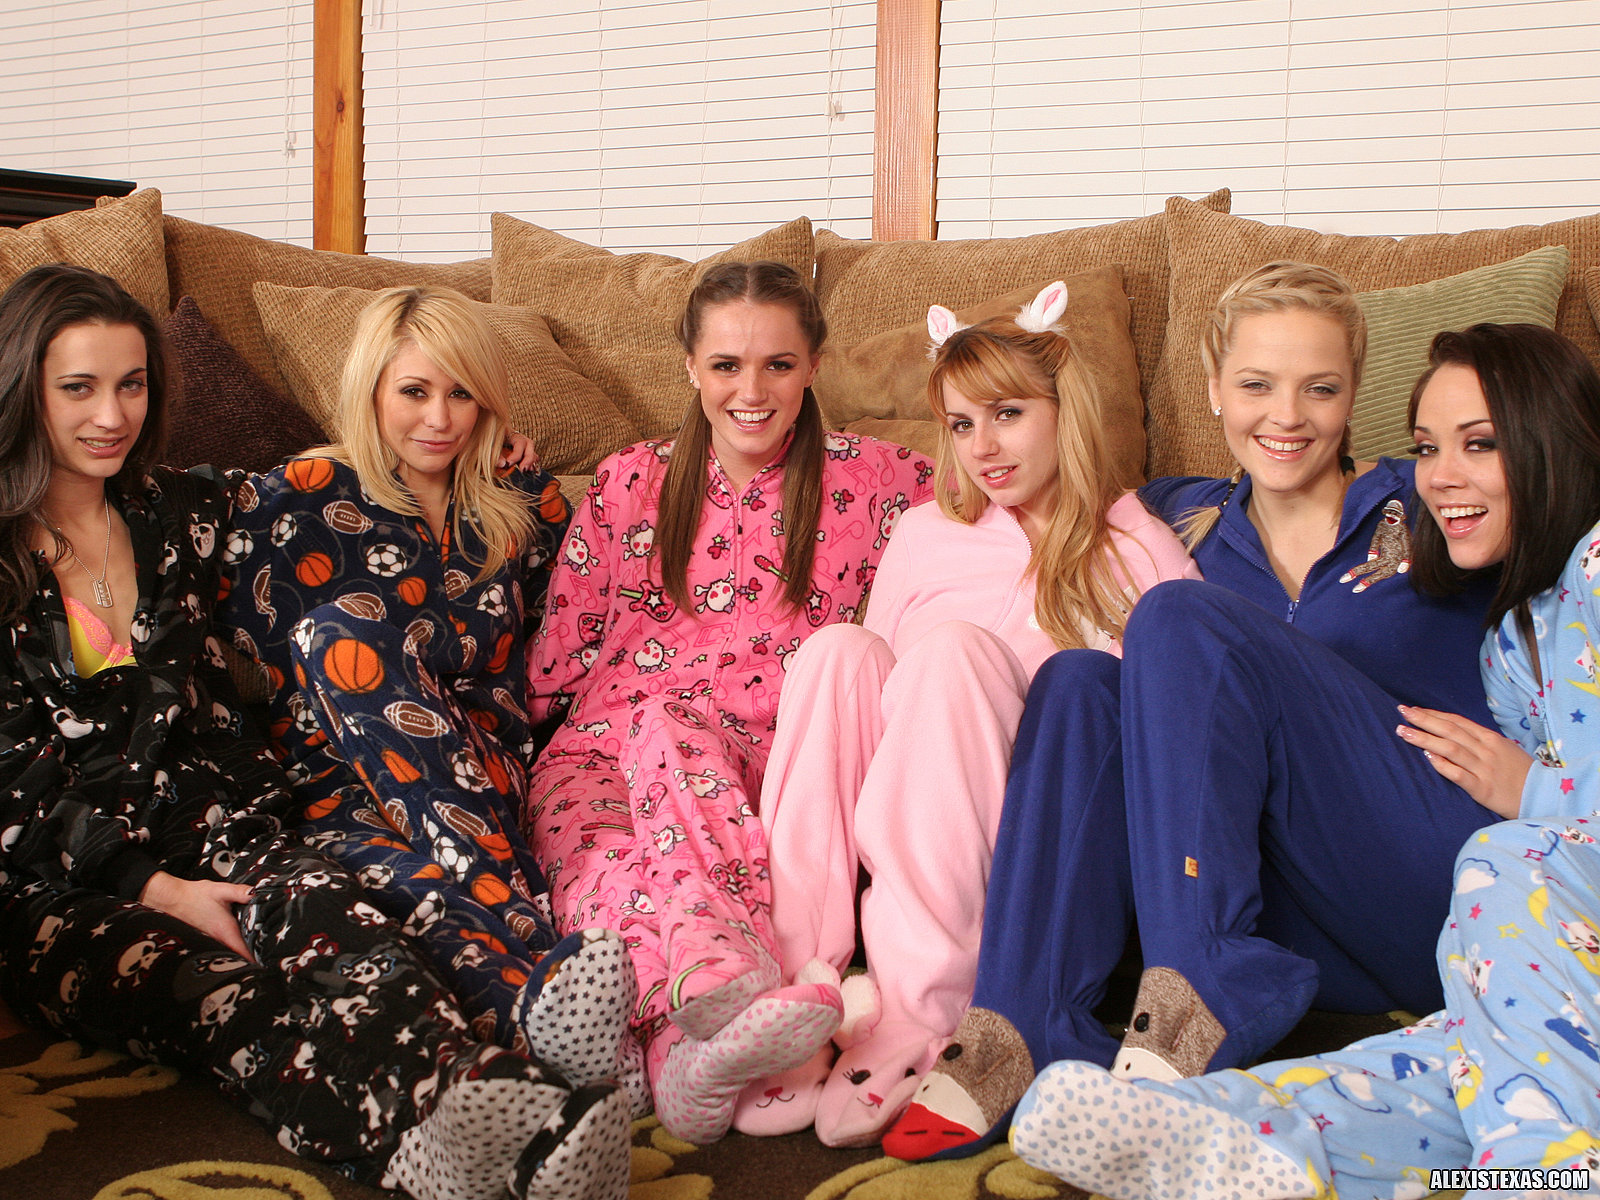 sexy sleepover group photos